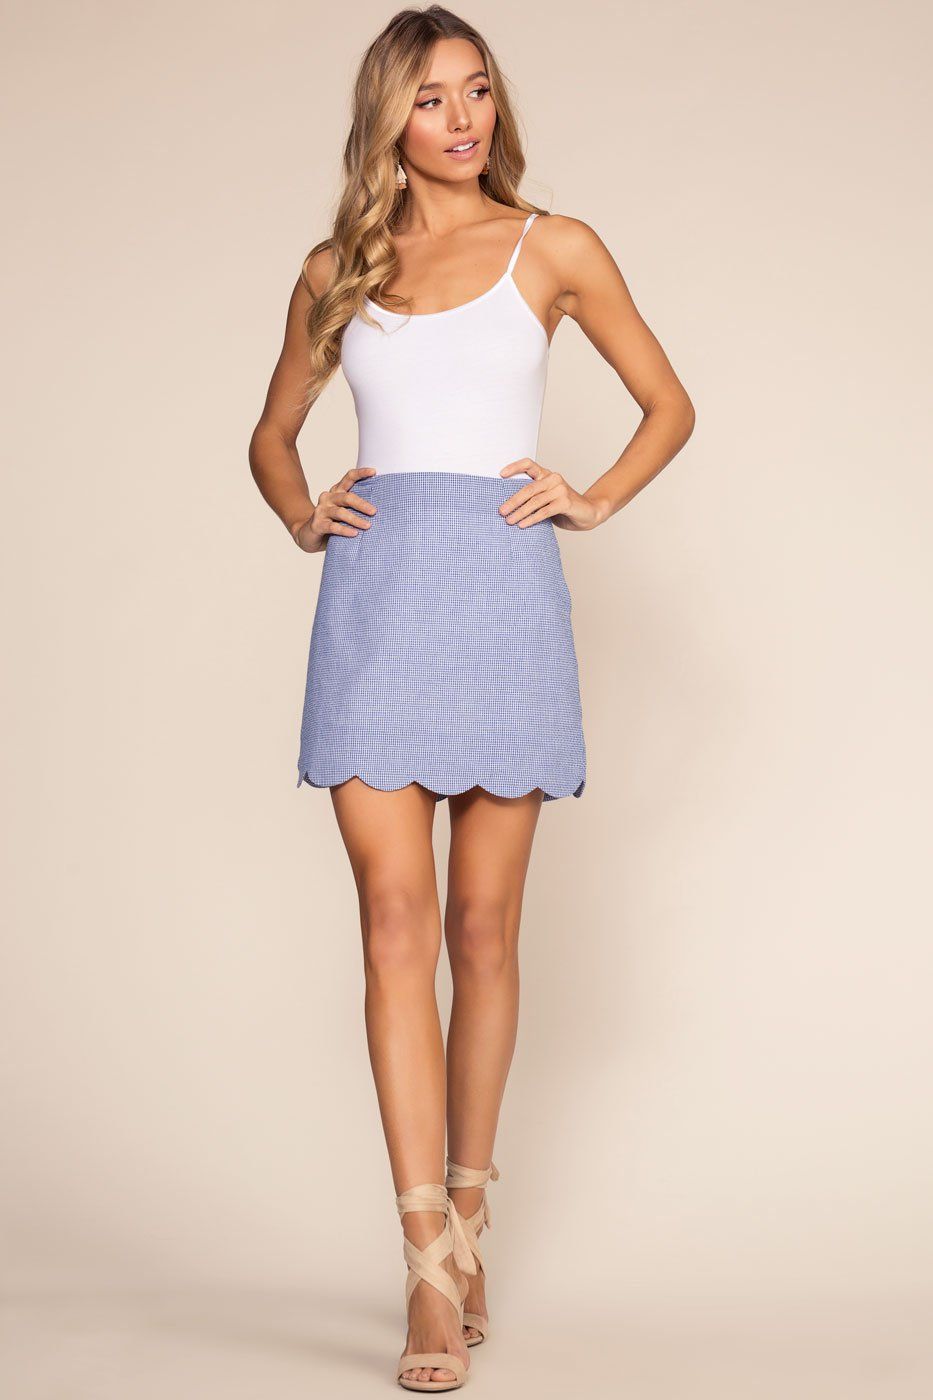 Blue Scalloped Gingham Skirt